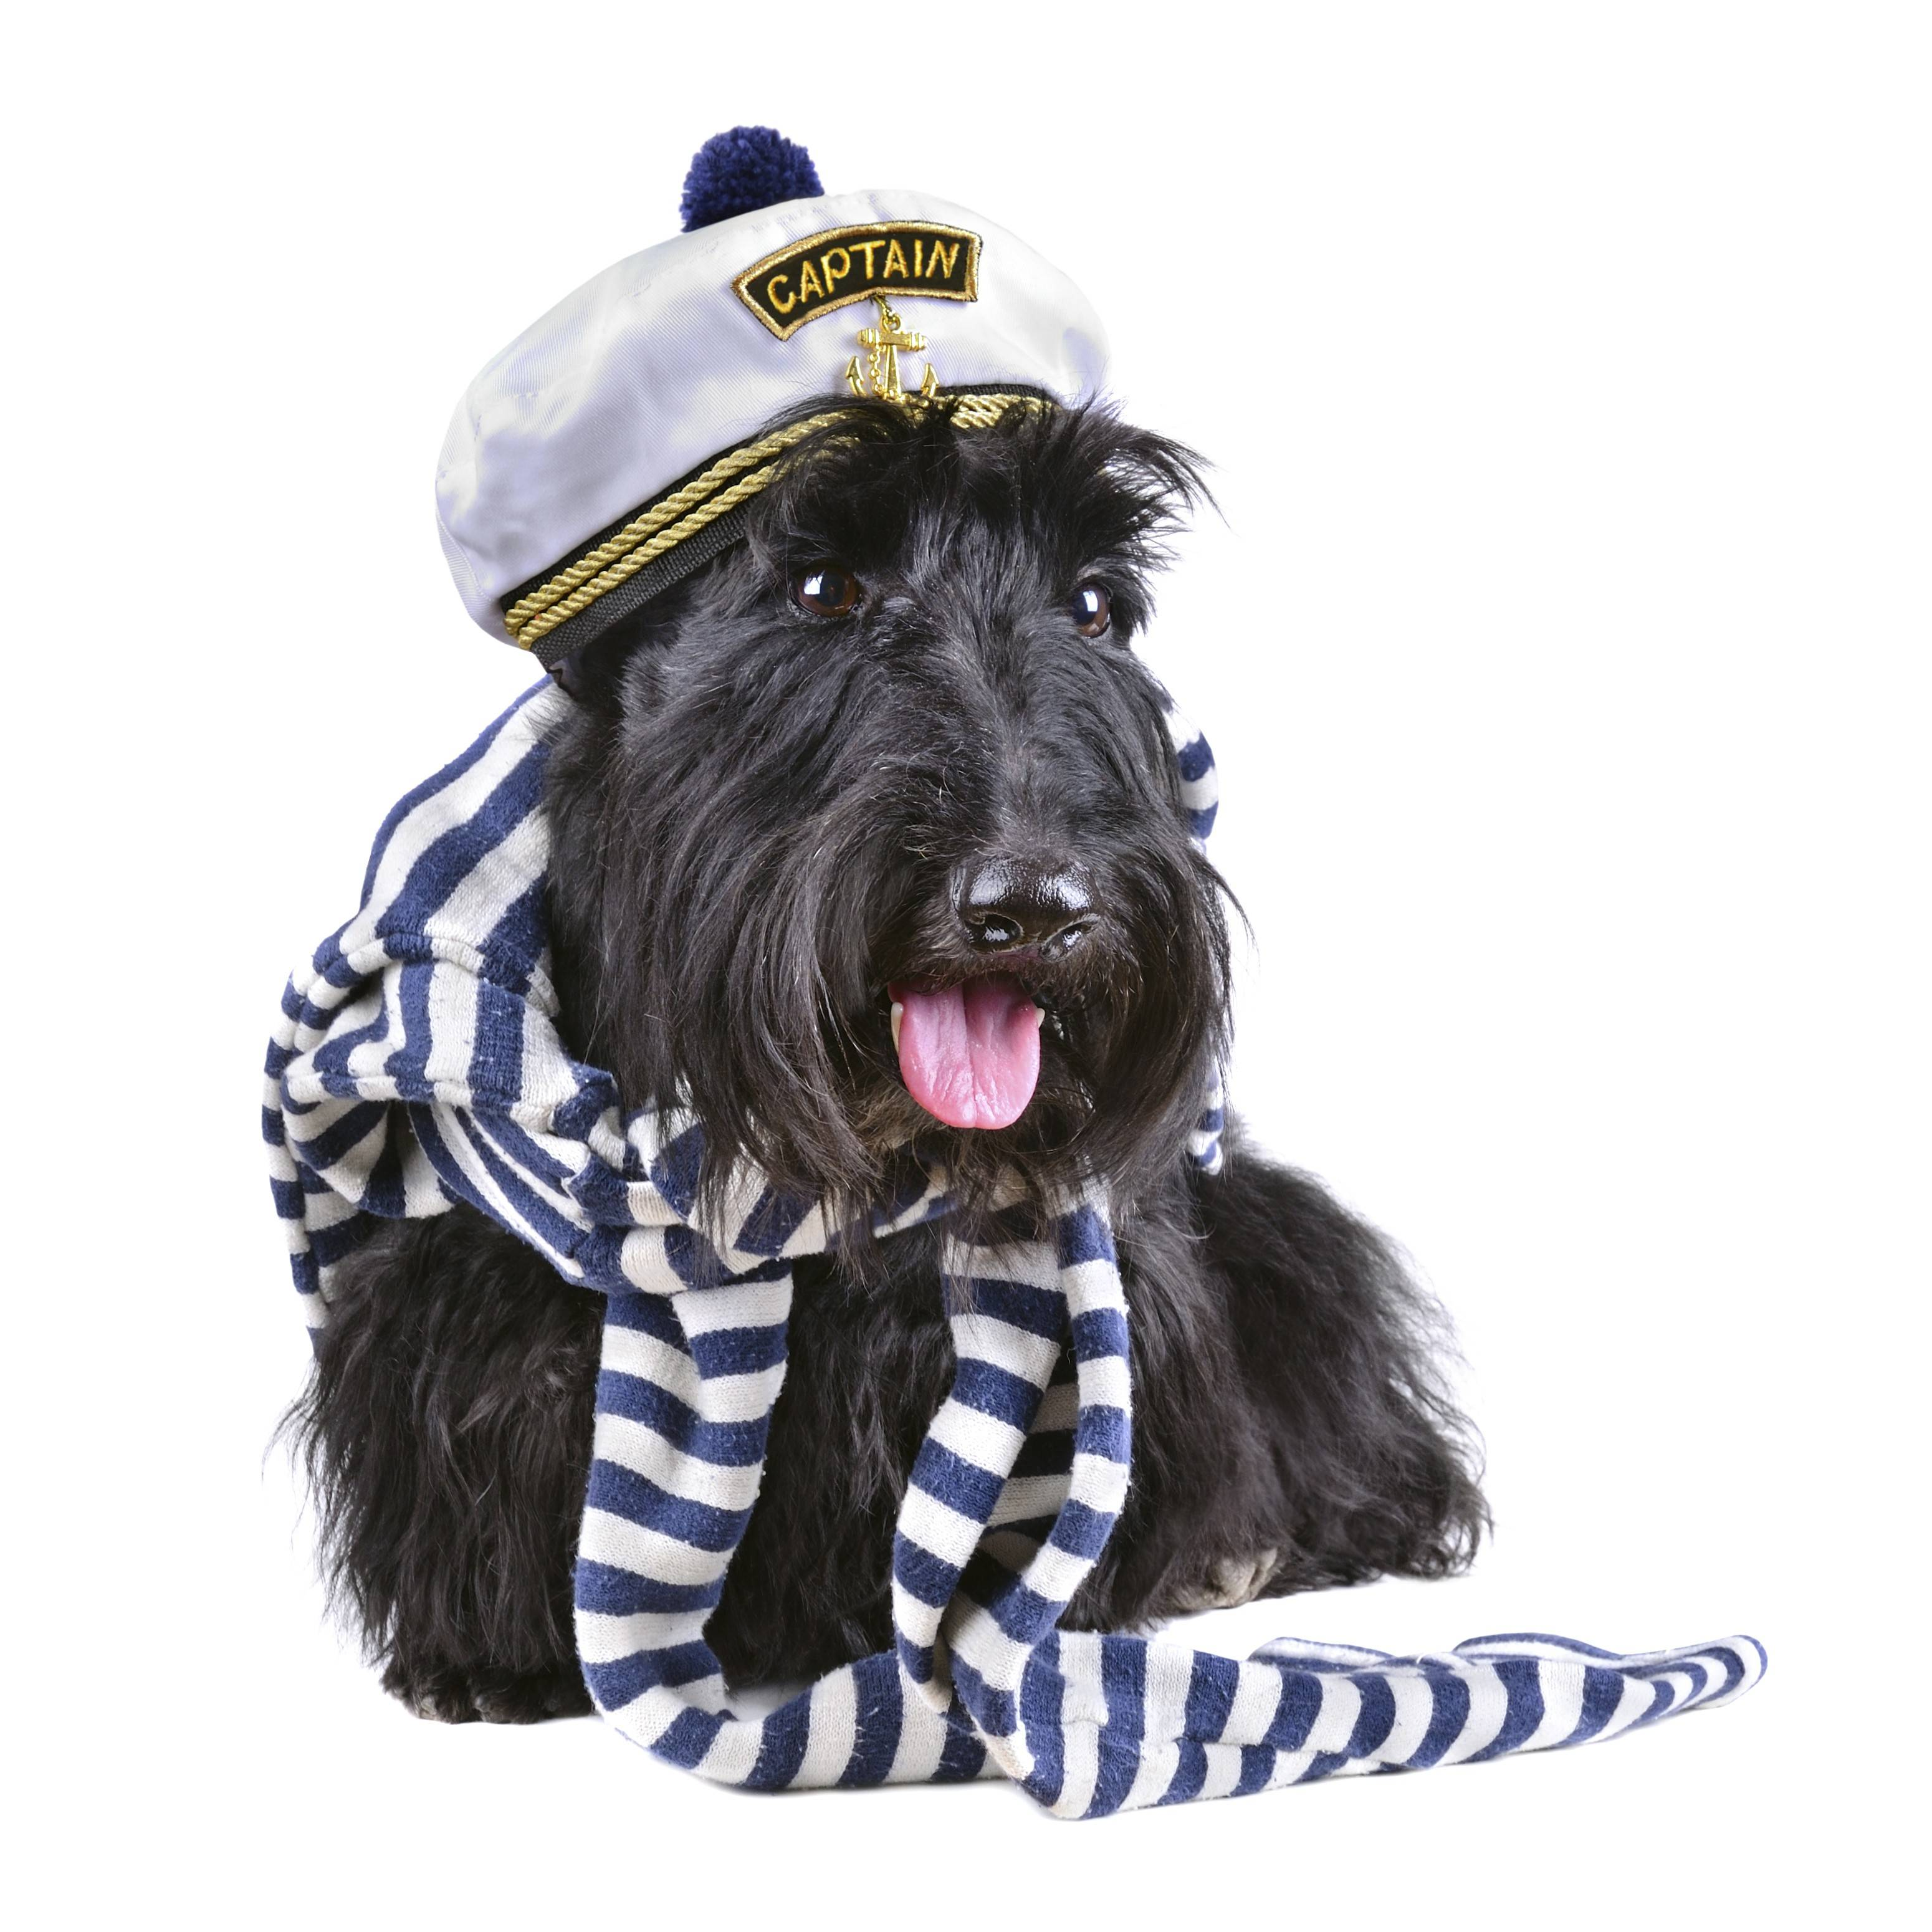 Dogs can dress in costume for the Dog Day Parade on Saturday, May 10, a the Gorton Community Center, 400 E. Illinois Road, Lake Forest.